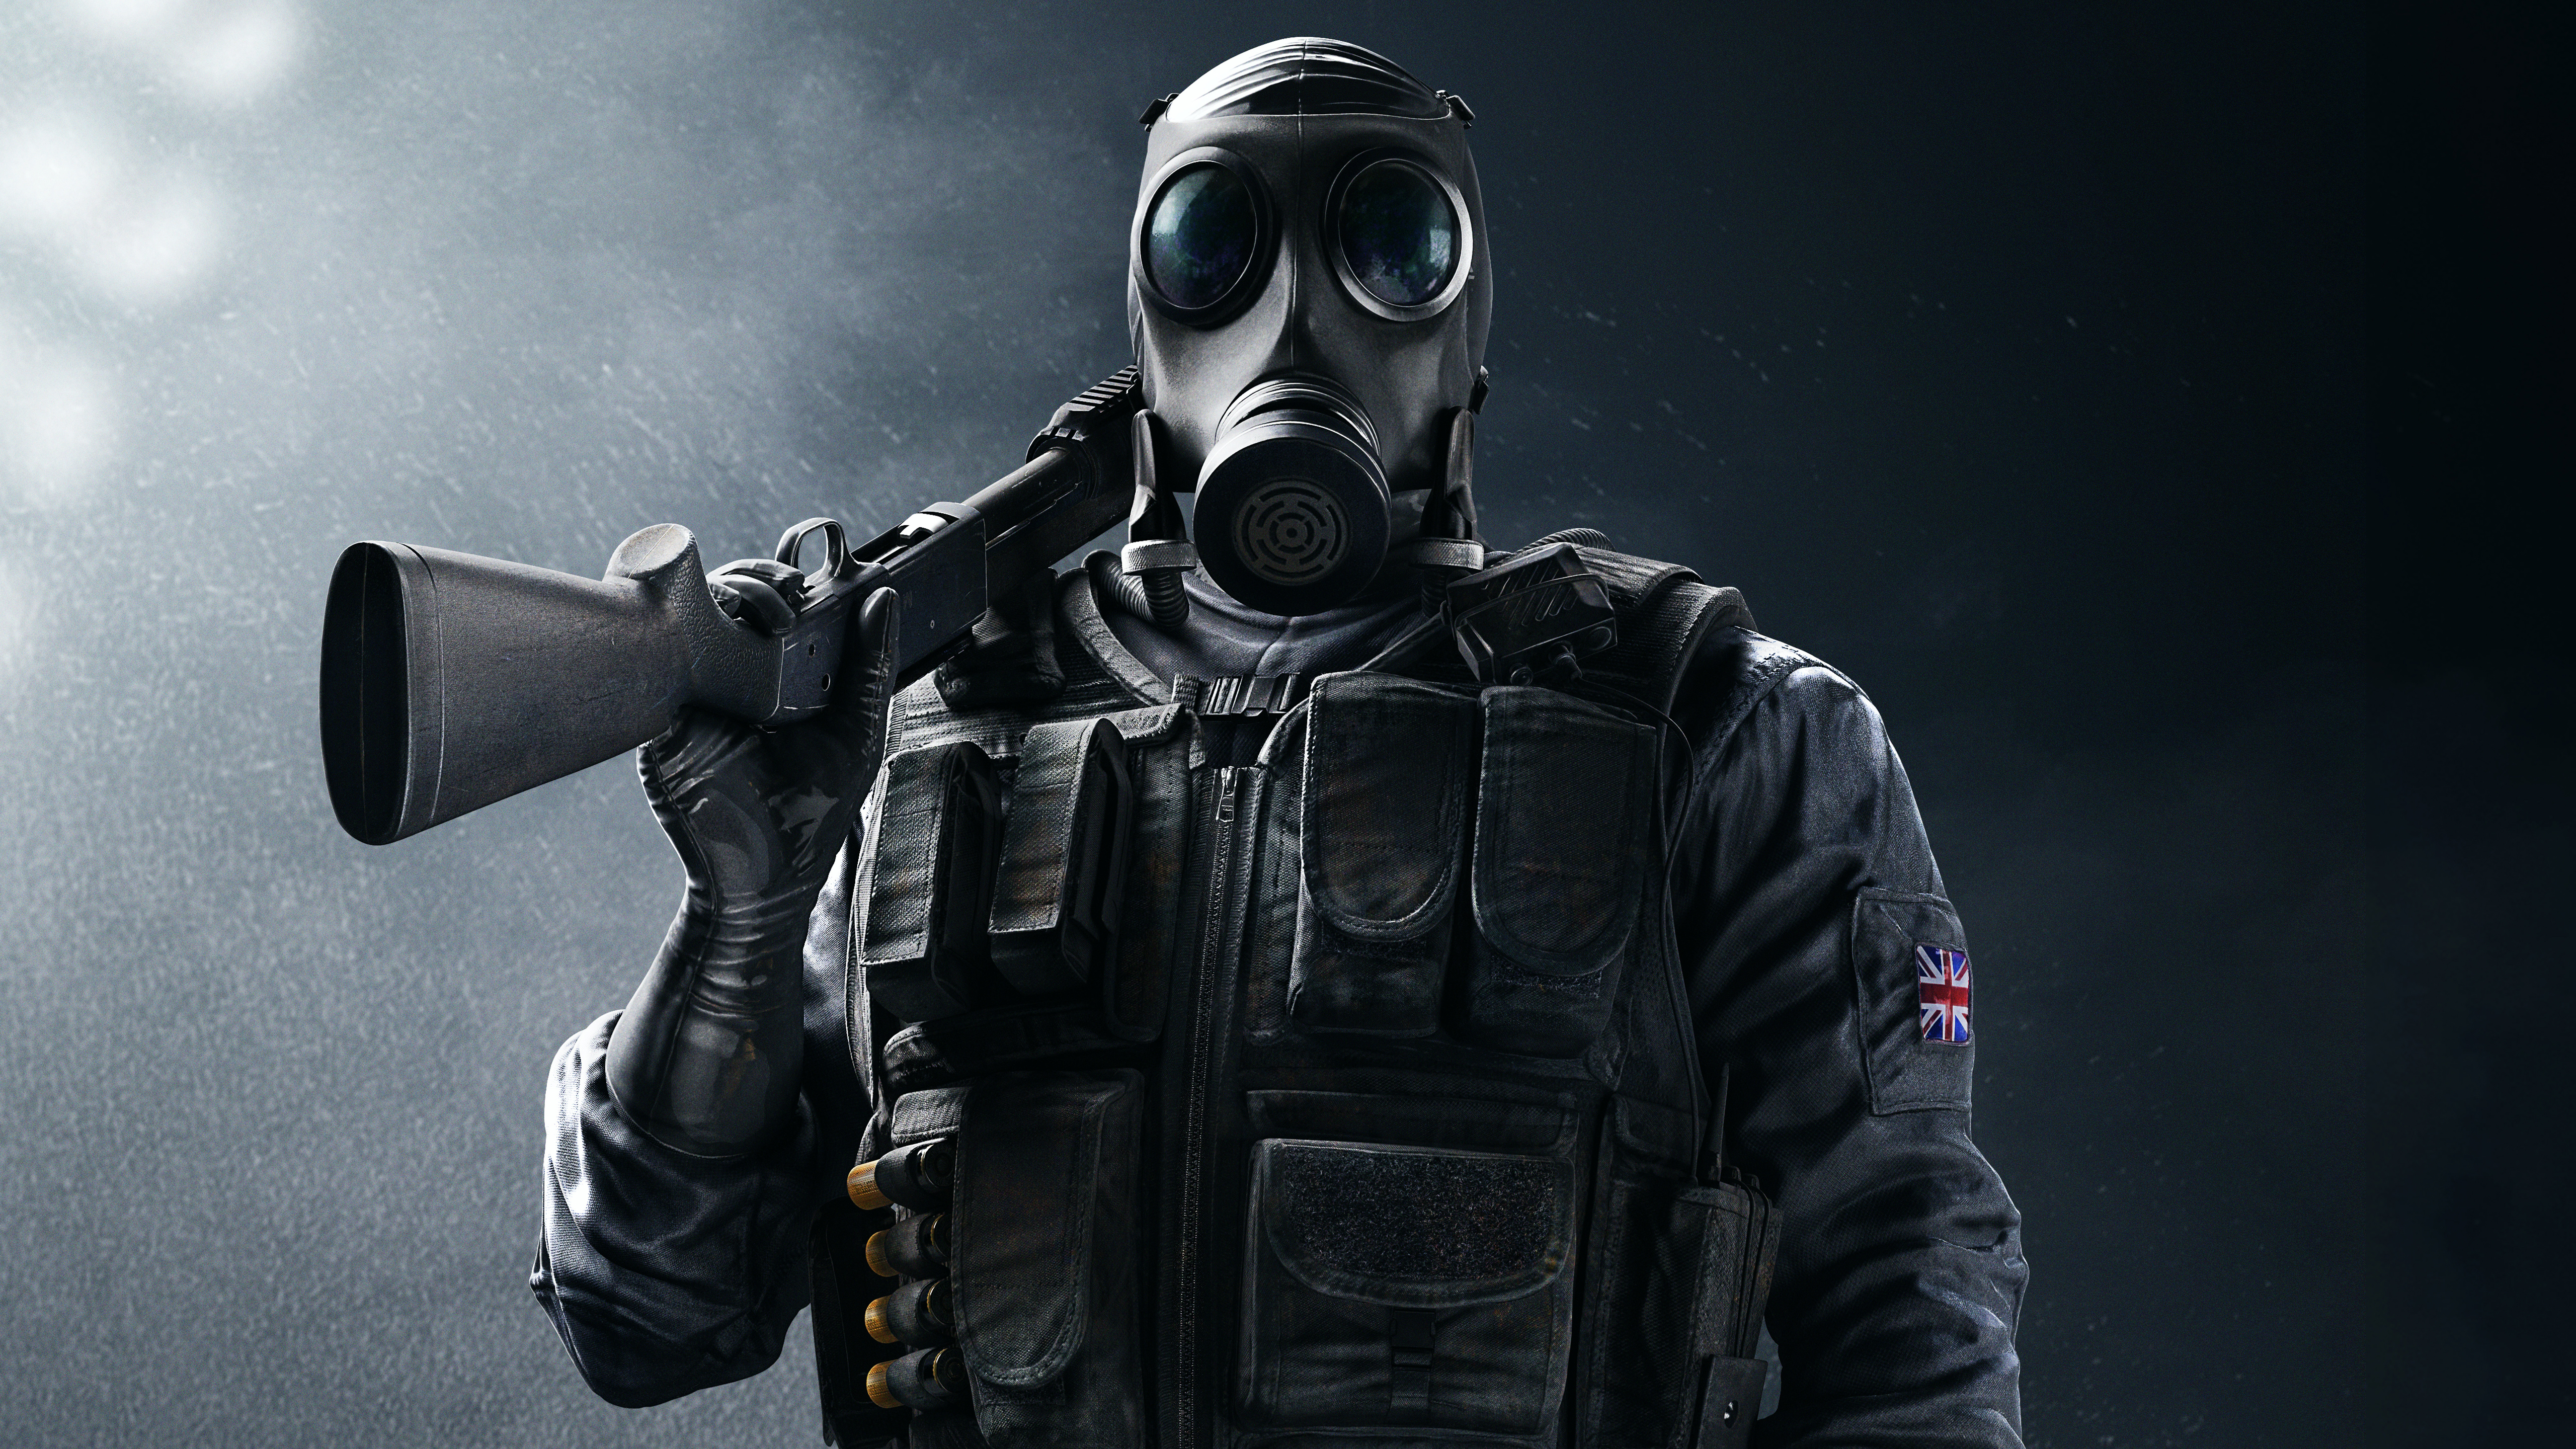 Siege Wallpapers, Photos And Desktop Backgrounds Up To 8K